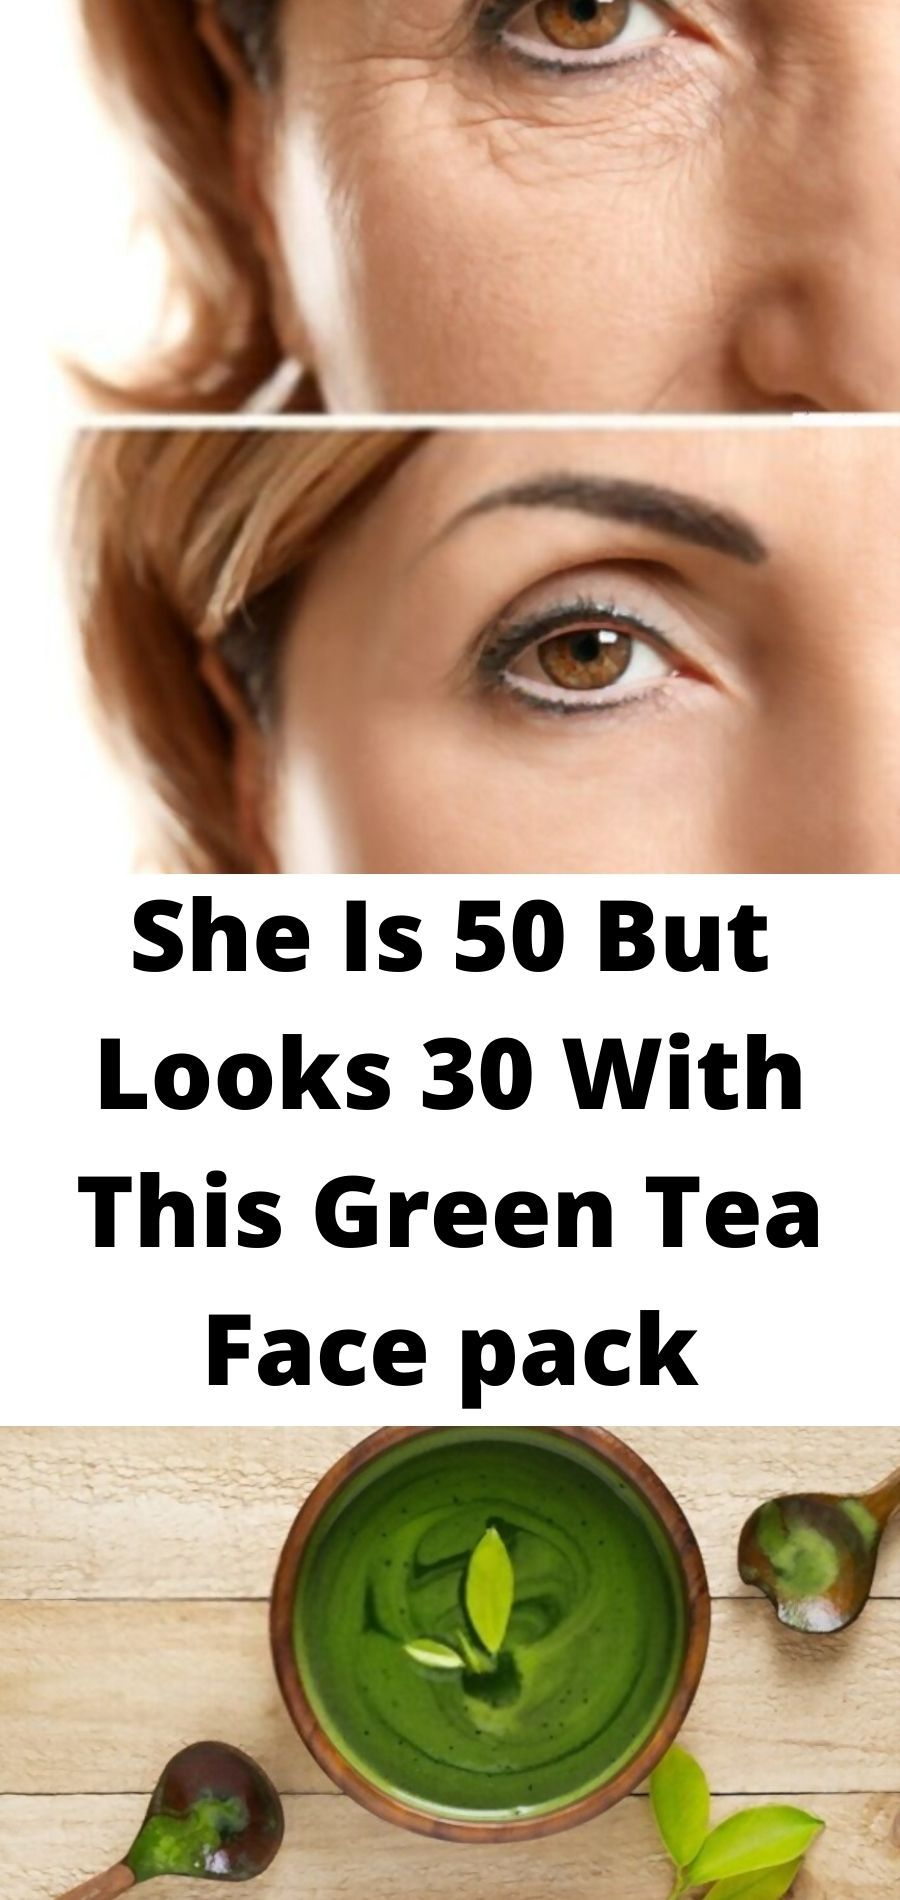 She Is 11 But Looks 11 With This Green Tea Face pack  skin